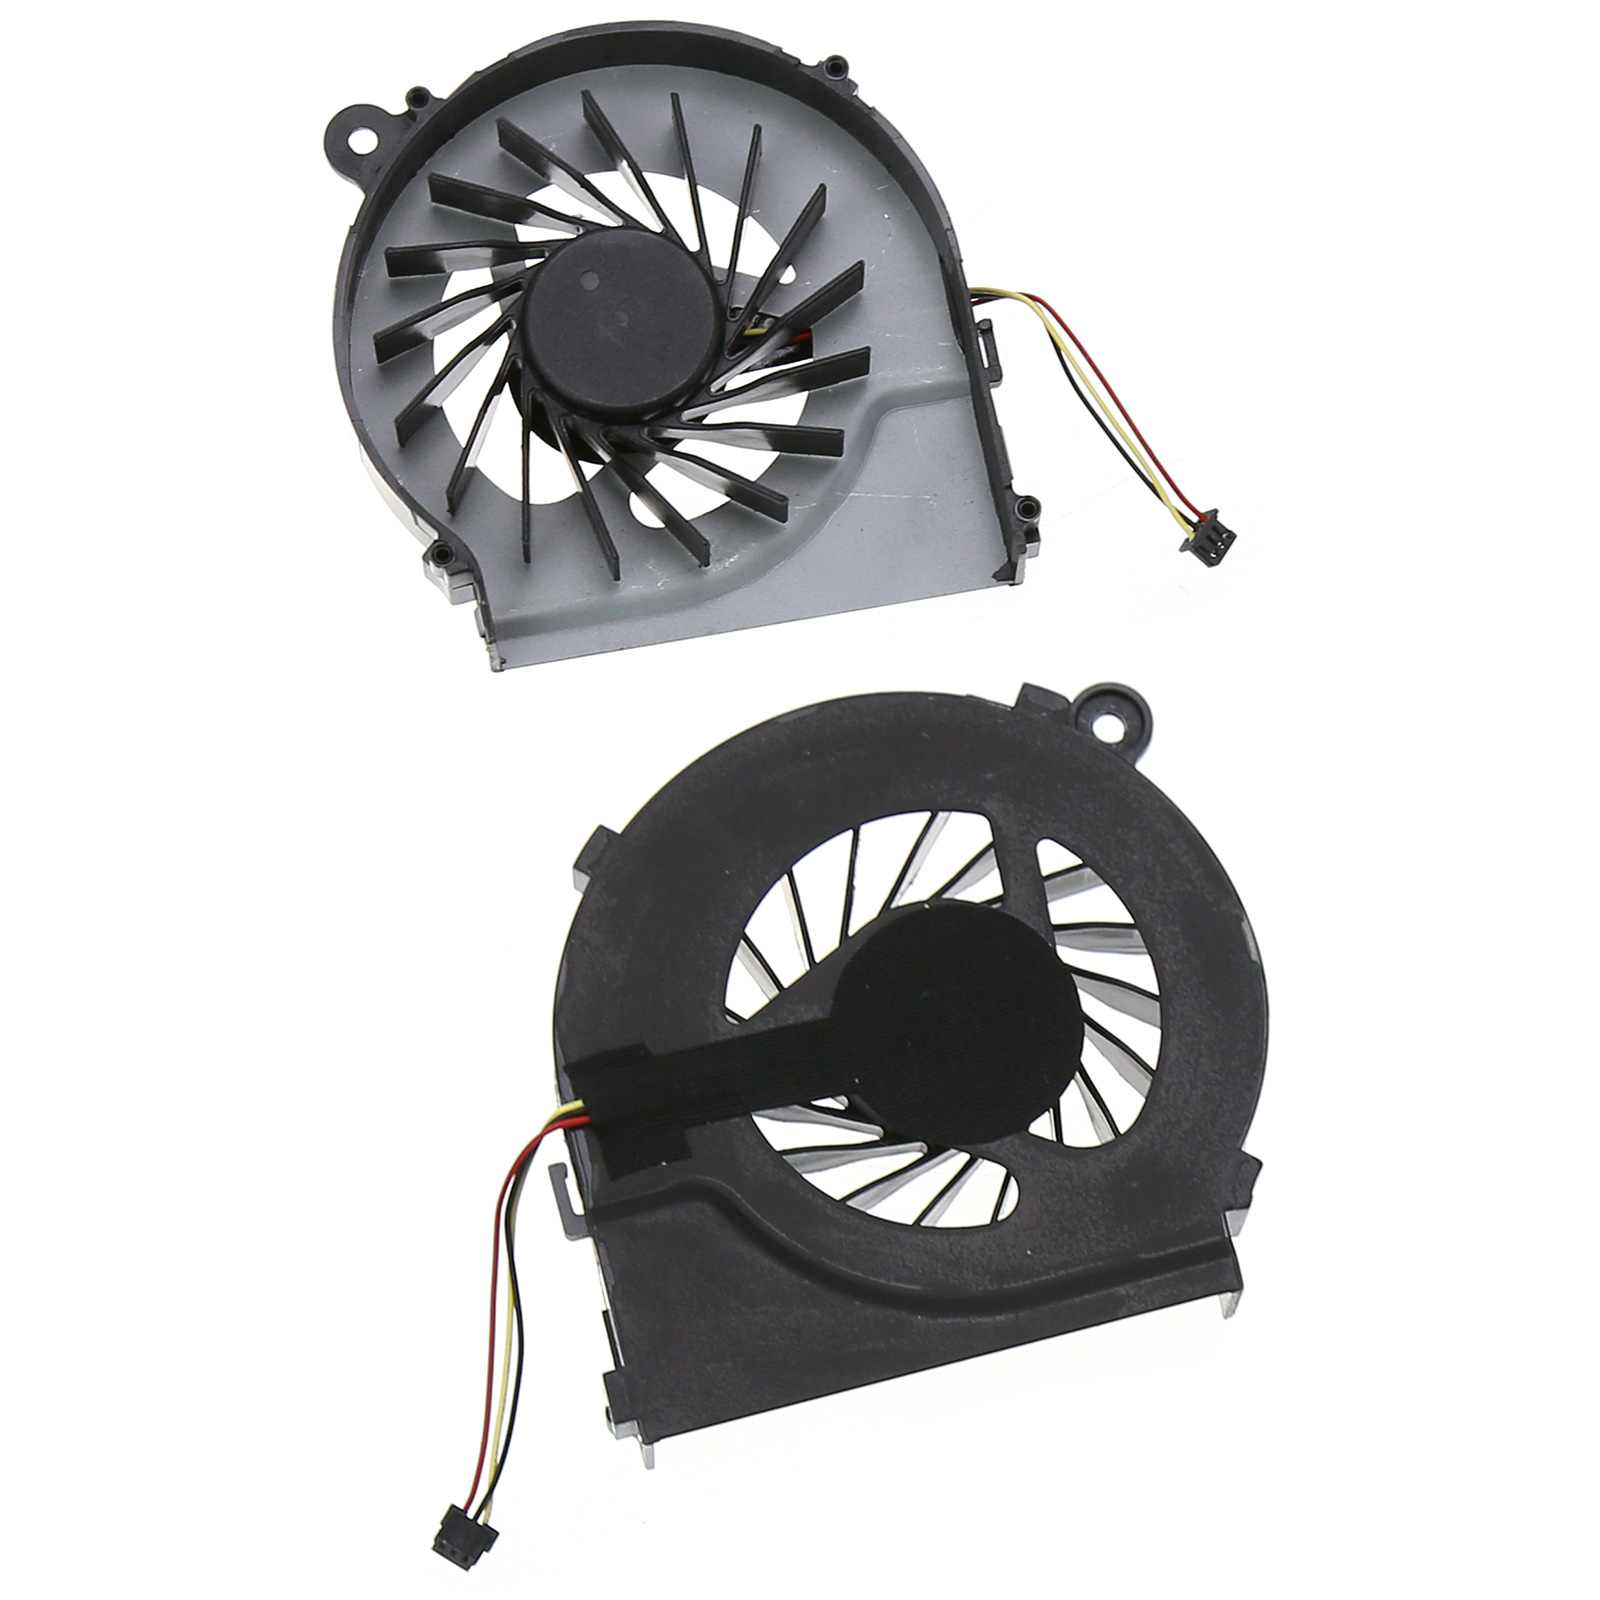 2017 Laptop CPU Cooler Cooling Fan PC cooling fan for G4-2000 G7 g7-2000 G6 G6-2000 G7-2240US FAR3300EPA KIPO 683193-001 new laptop cpu cooling fan for hp pavilion g7 1070us g7 1150us g7 1310us g7 1219wm series 595833 001